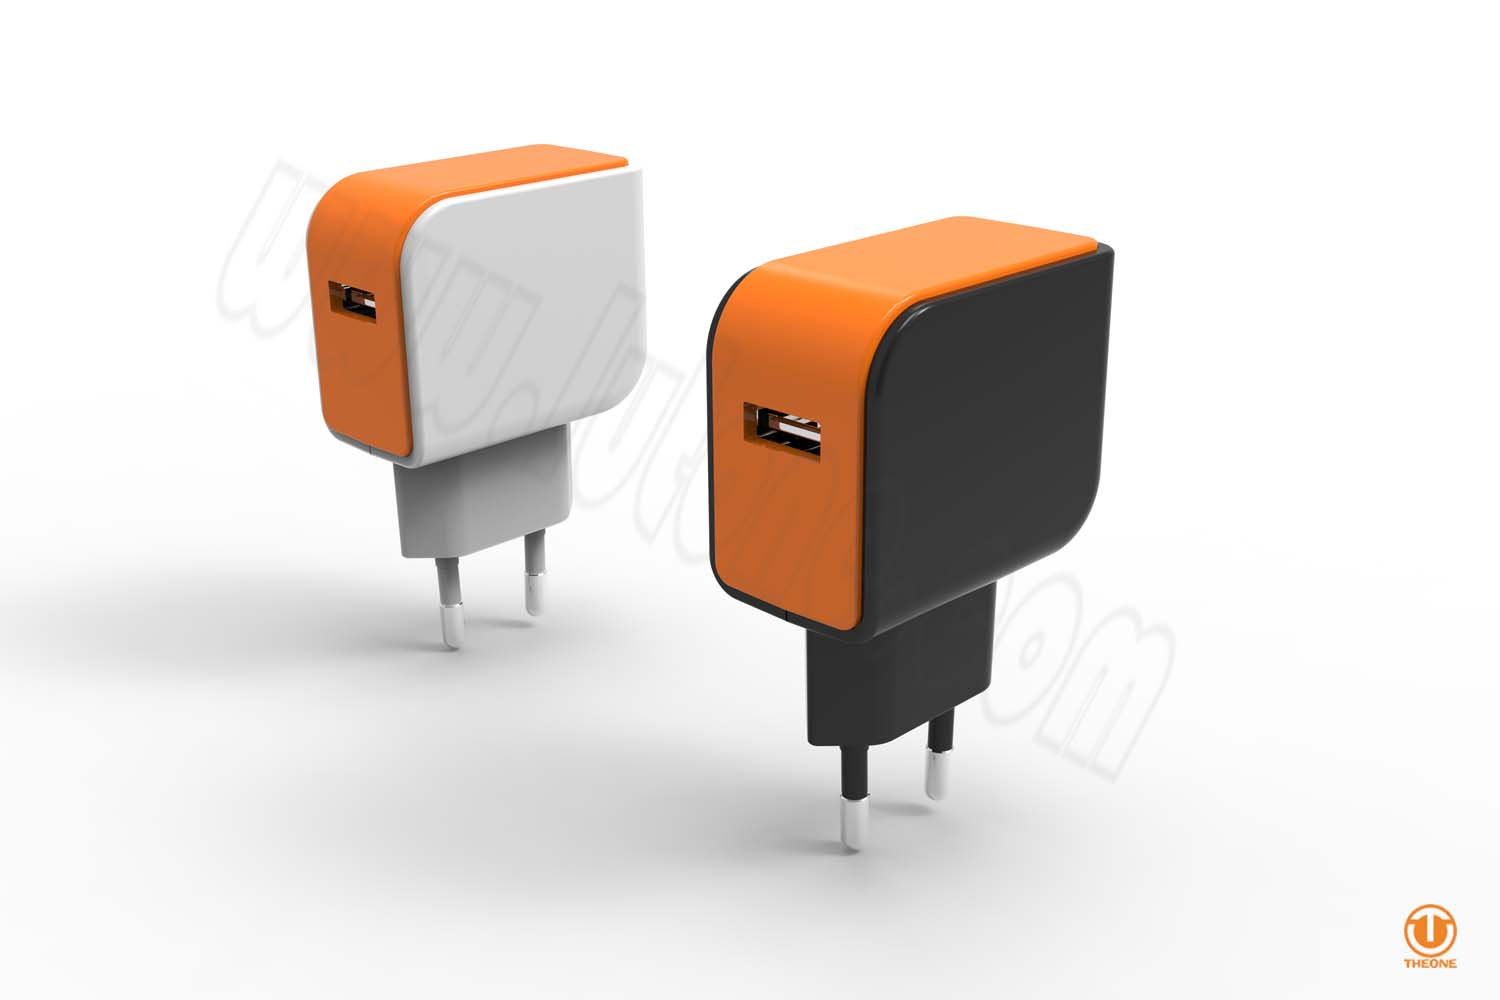 tc02b2-1 usb wall charger